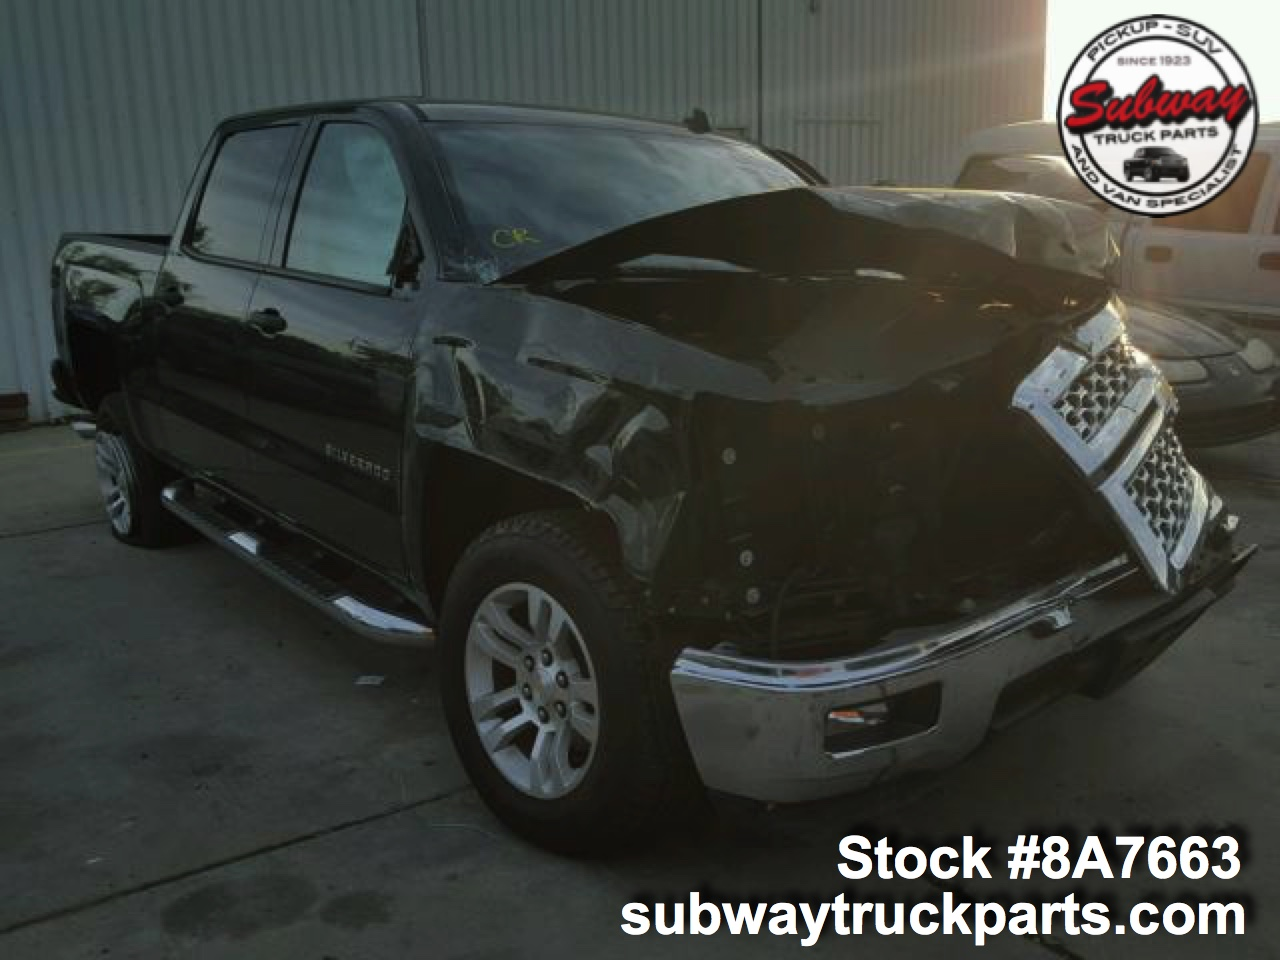 Used 2014 Chevrolet Silverado 1500 Parts For Sale Subway